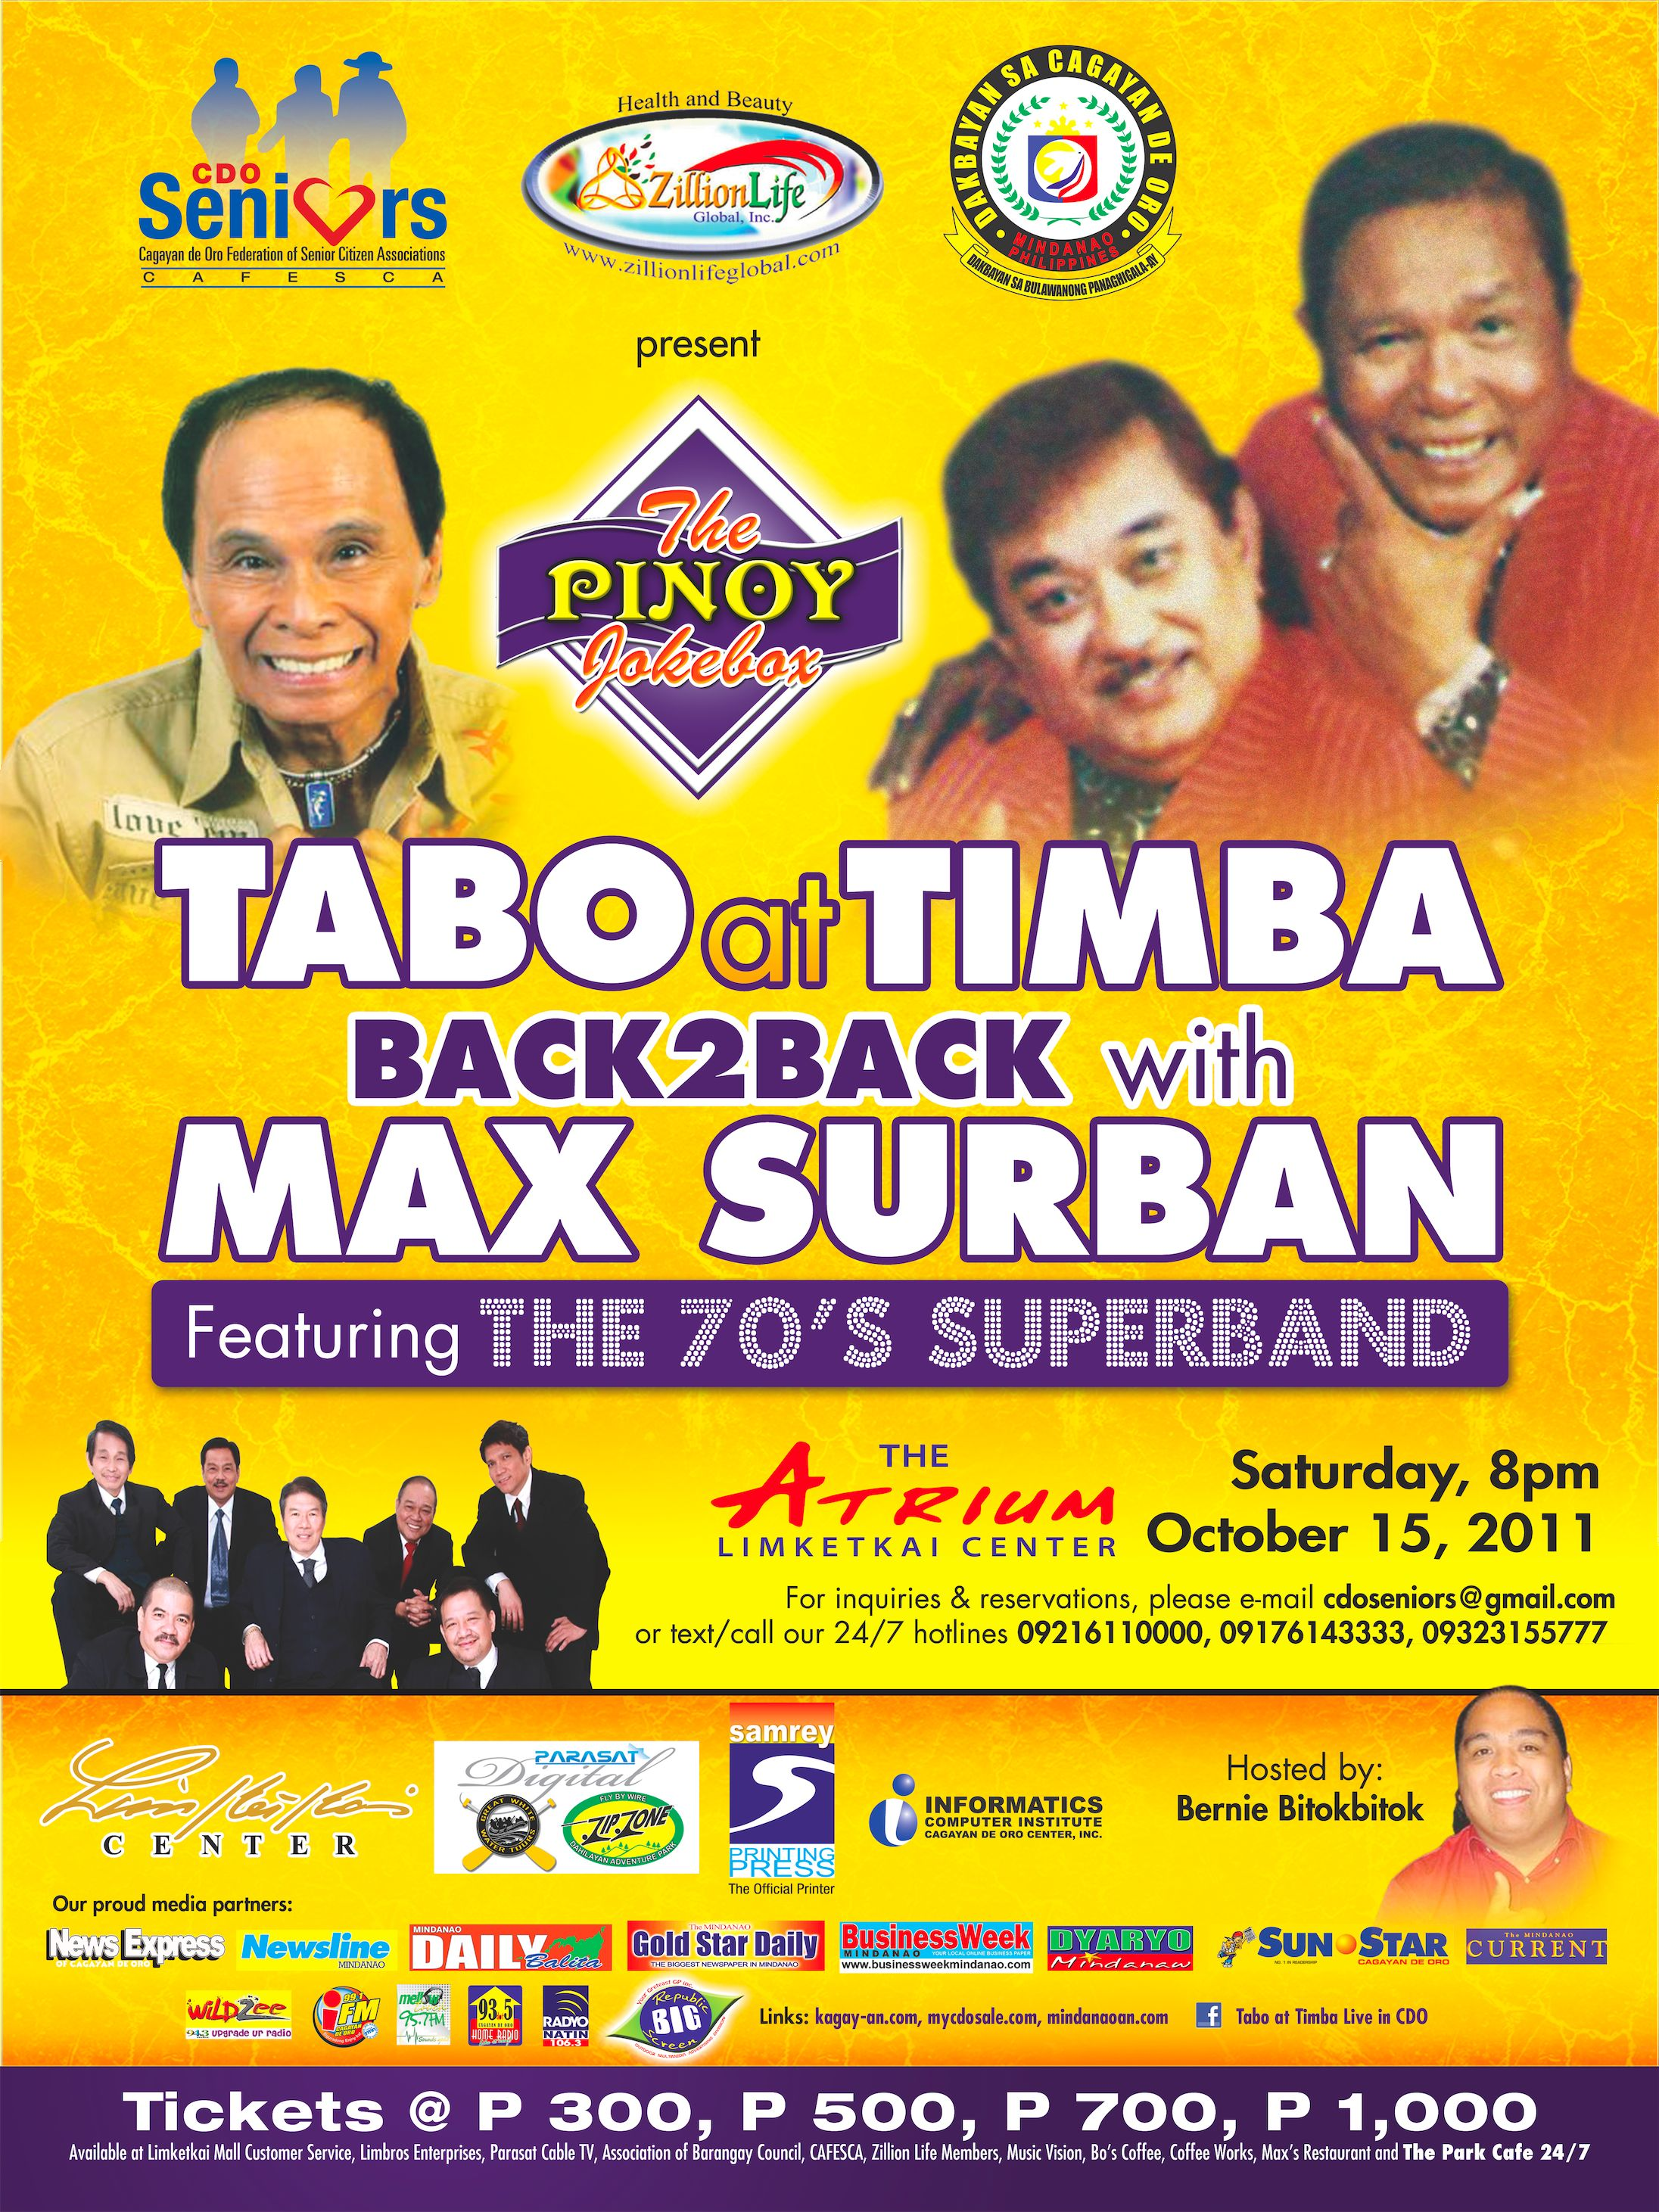 UPDATED: Tabo at Timba and Max Surban featuring the 70's Superband Live in CDO this October 15, 2011!